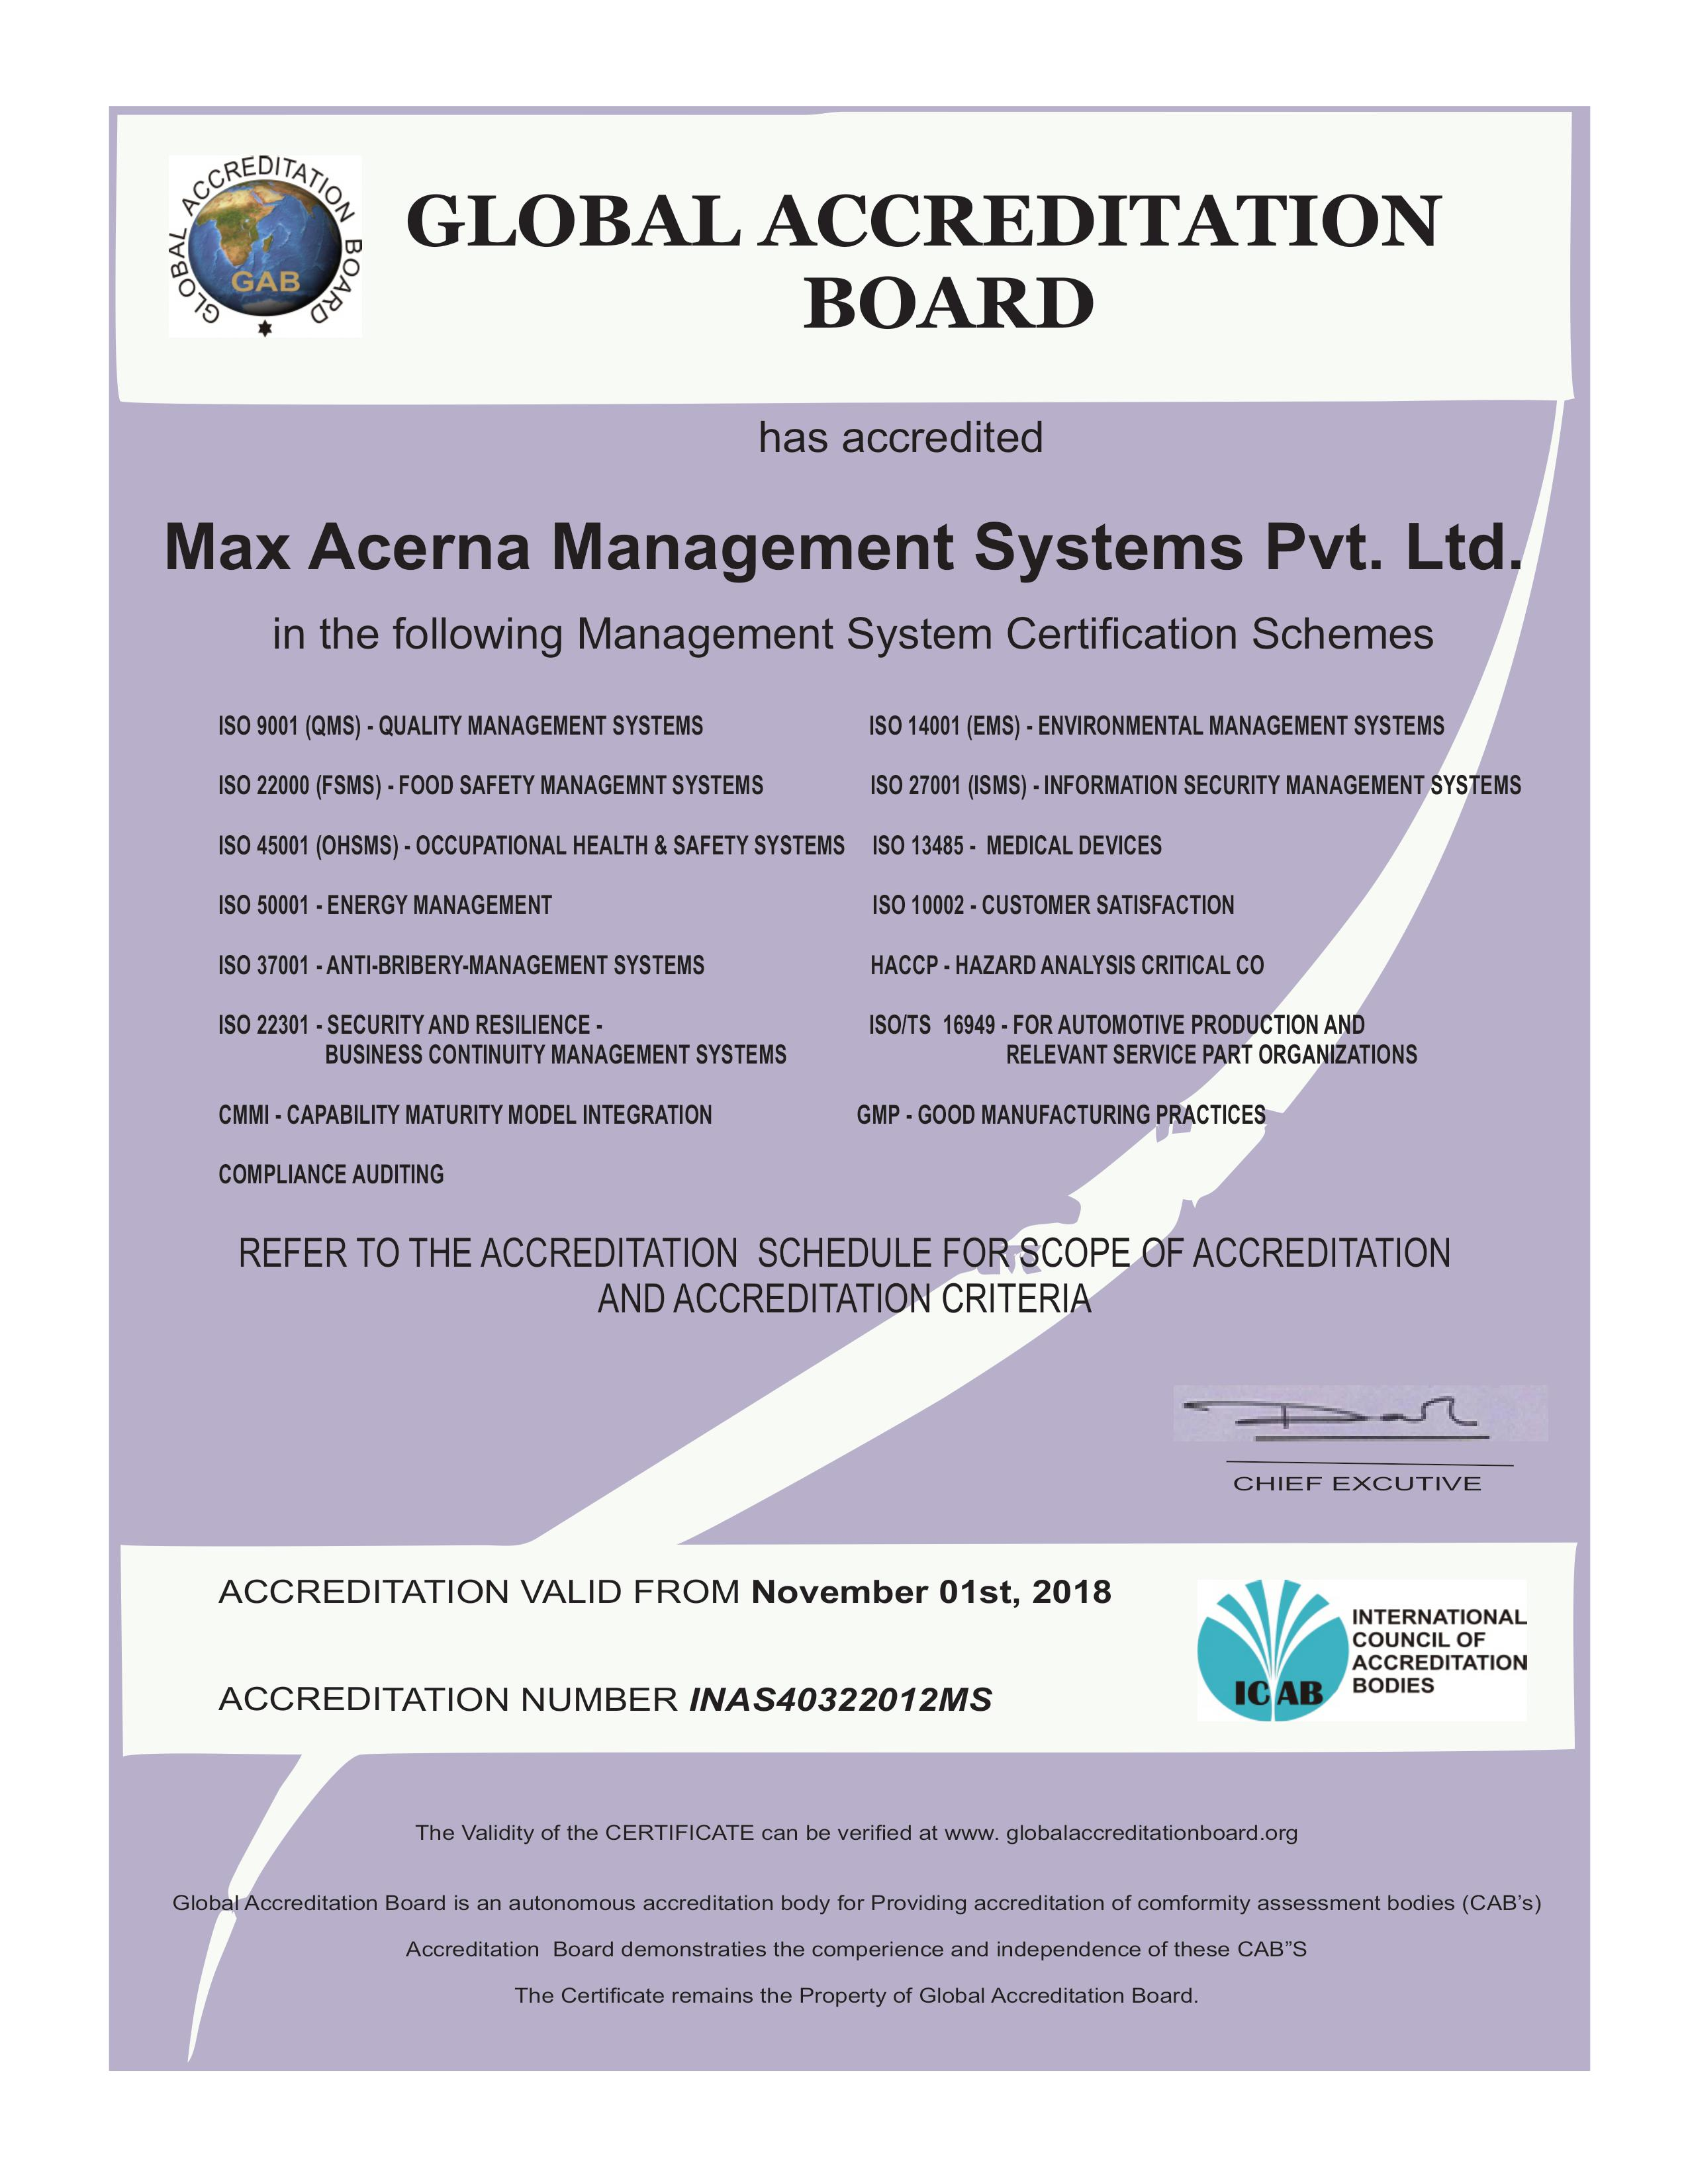 Personnel certification: a systematic and consistent approach - the key to success 80